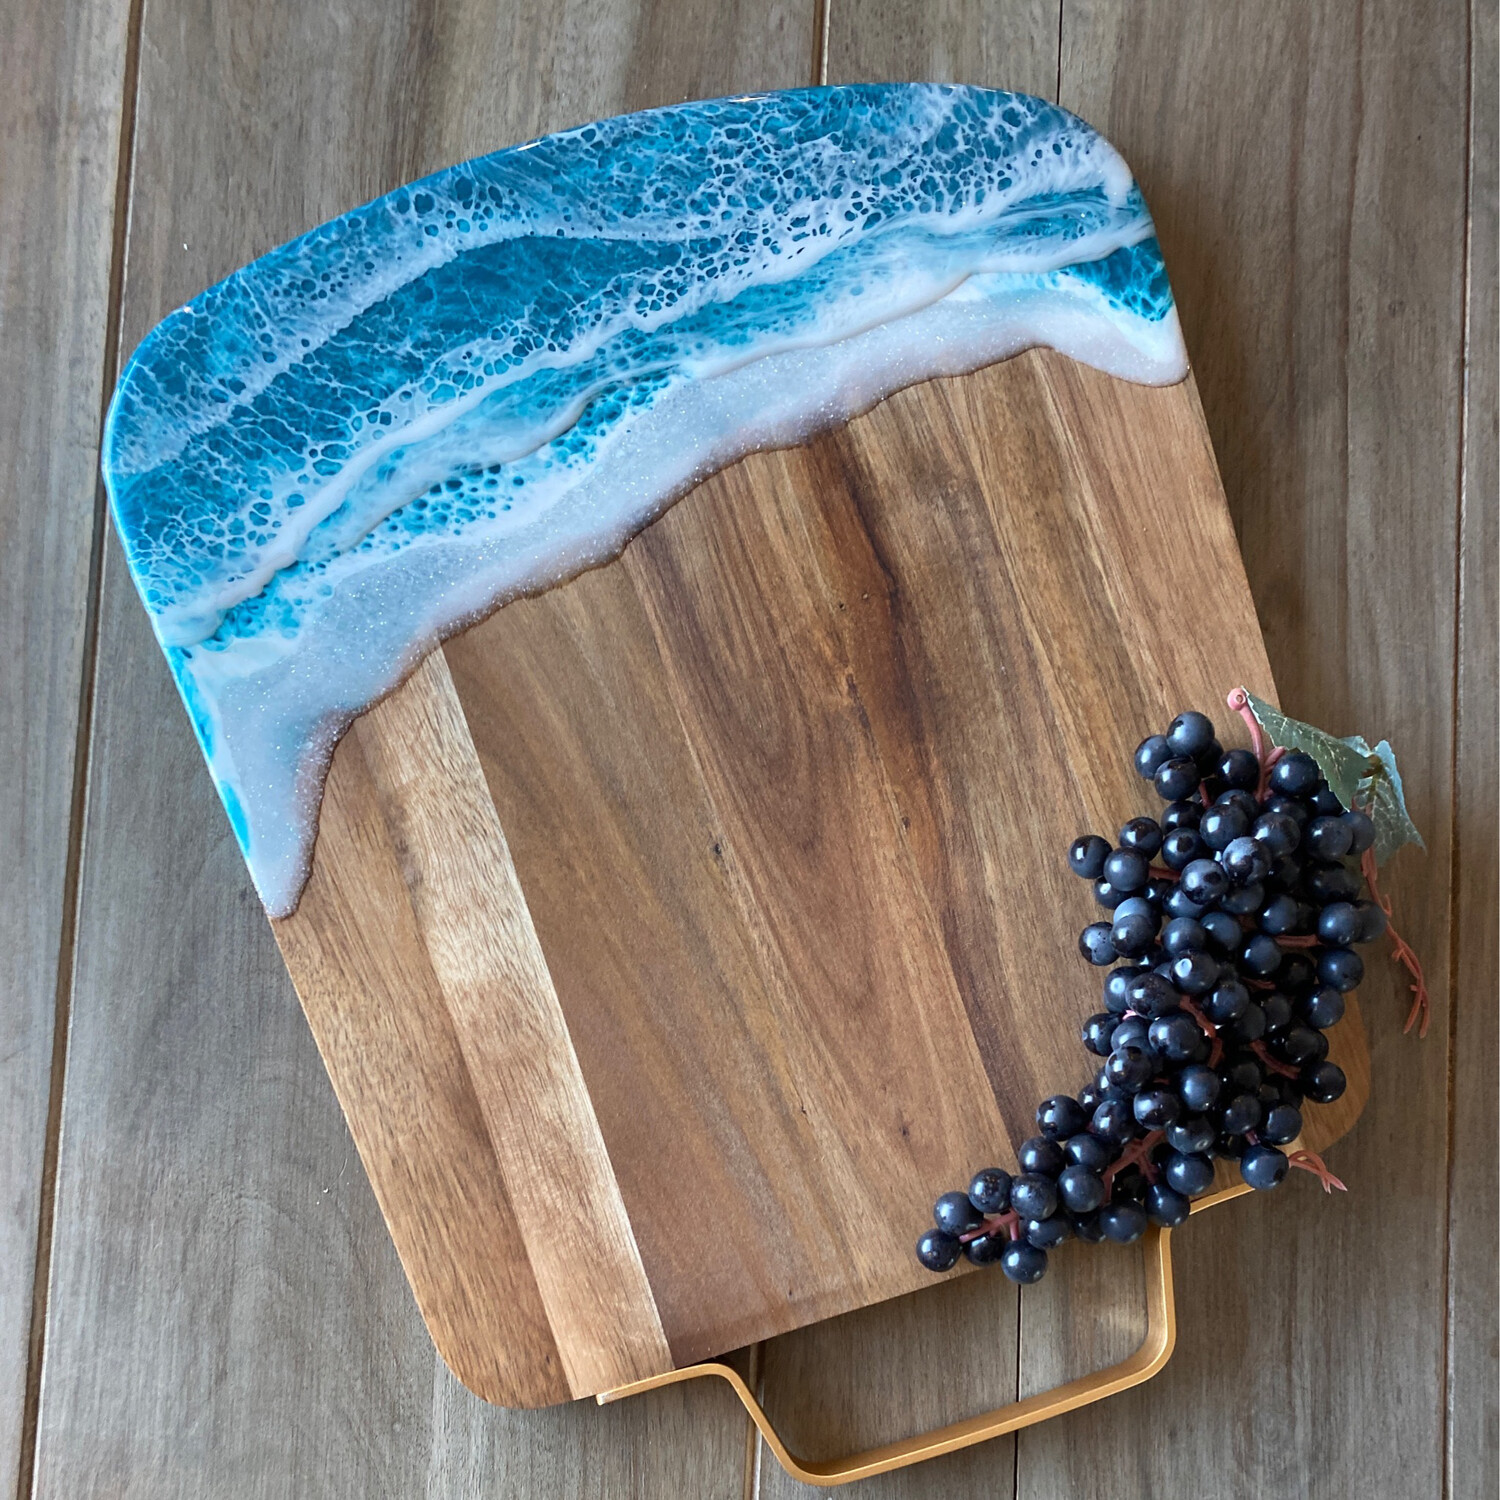 Donated To Urban Clean Living Mother's Day Giveaway.     Cheese Board Teal Waves On Acacia W Metal Handle